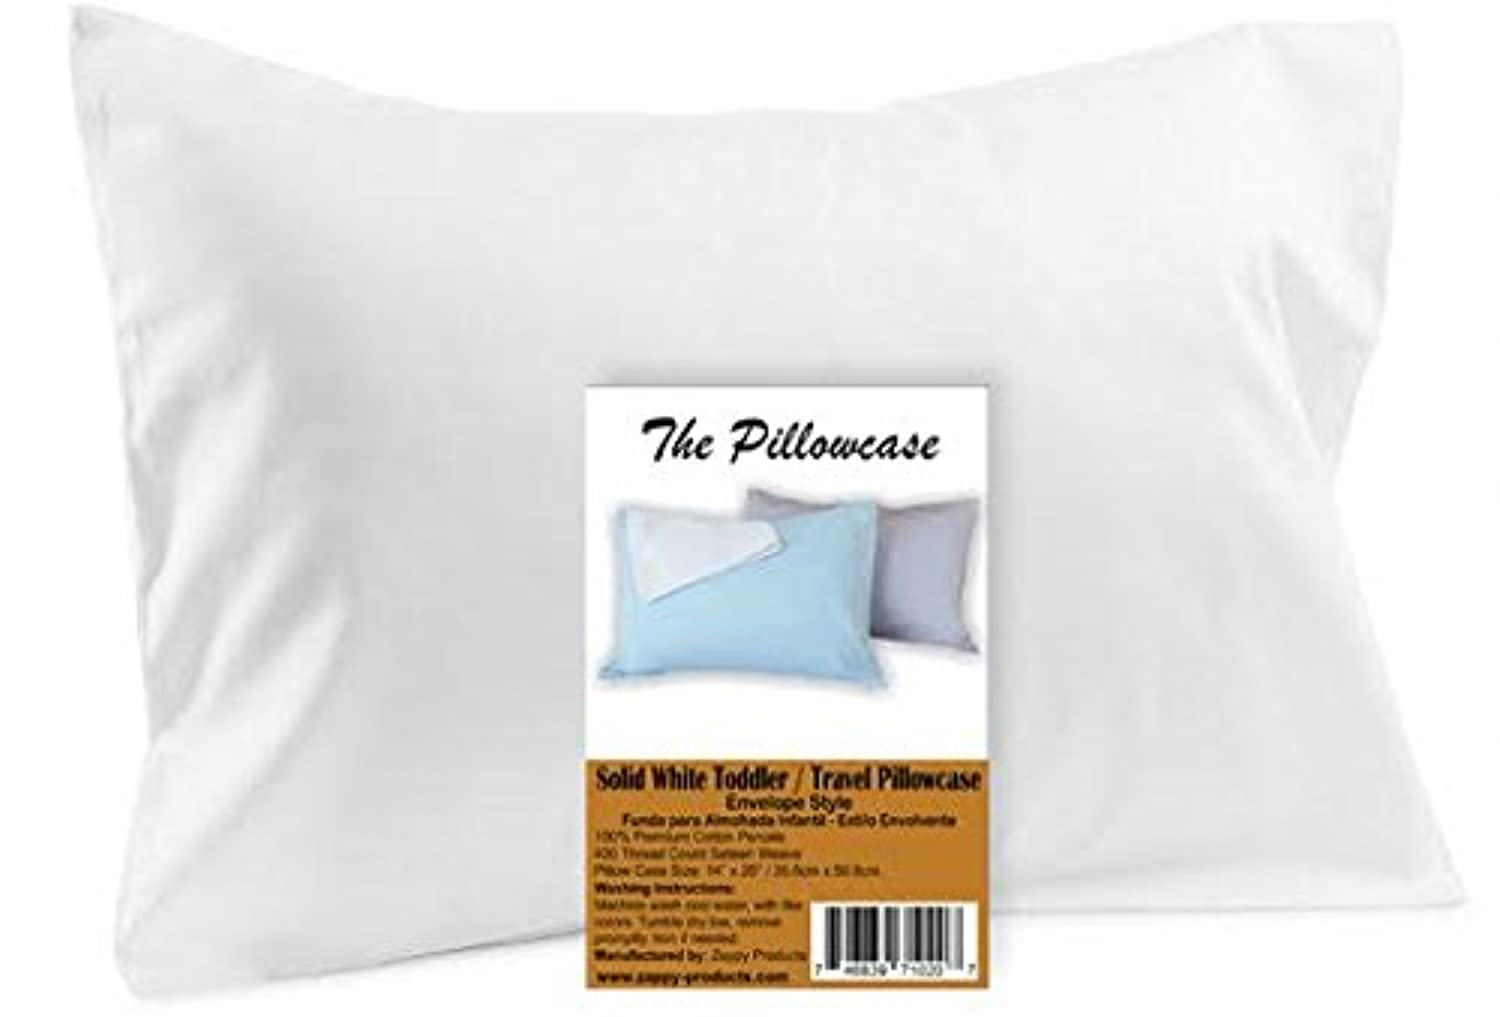 Toddler Travel Pillowcase 100% Softest Cotton Sateen Pillow Case, Fits 13x18, or 14x19 Toddler Travel Pillows - Naturally Hypoallergenic - Envelope Style Cases 400/500 Thread Ct (White) by The Pillowcase